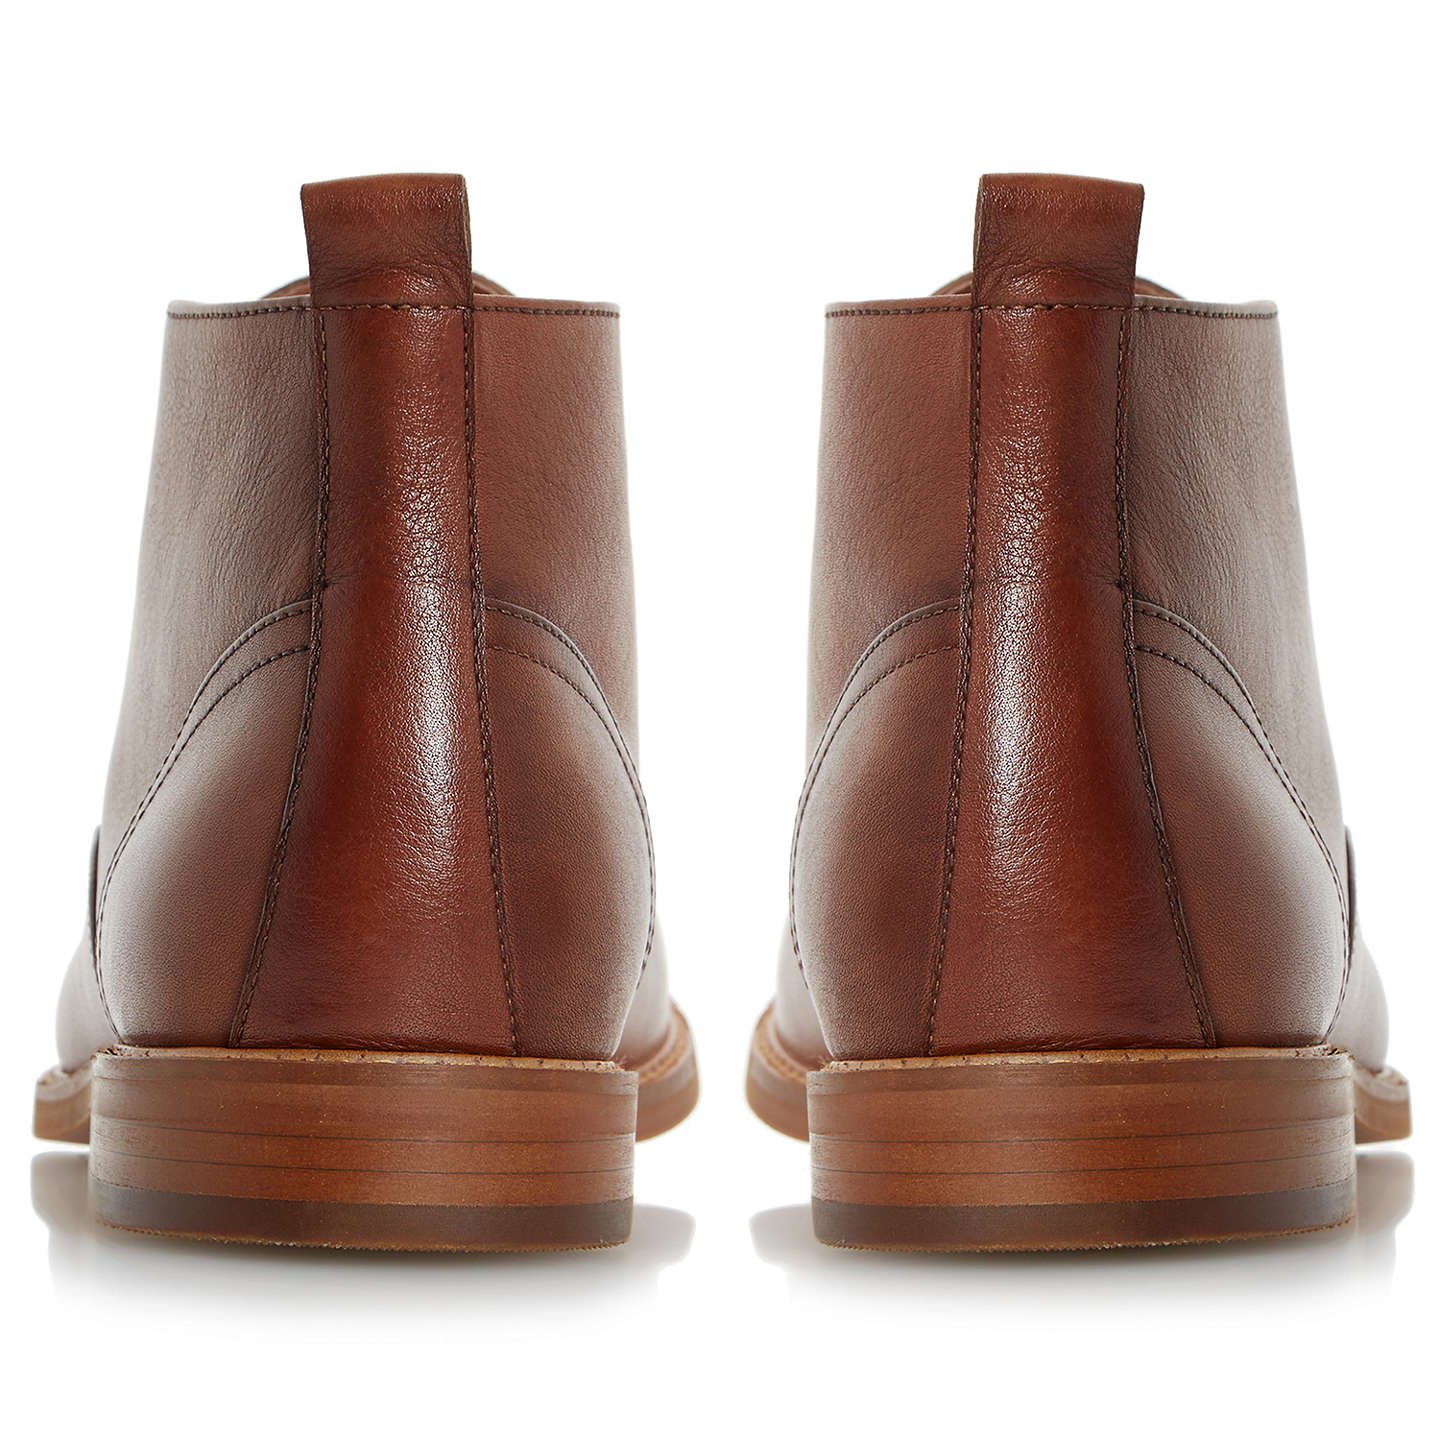 BuyDune Magnus Leather Chukka Boots, Tan, 6 Online at johnlewis.com